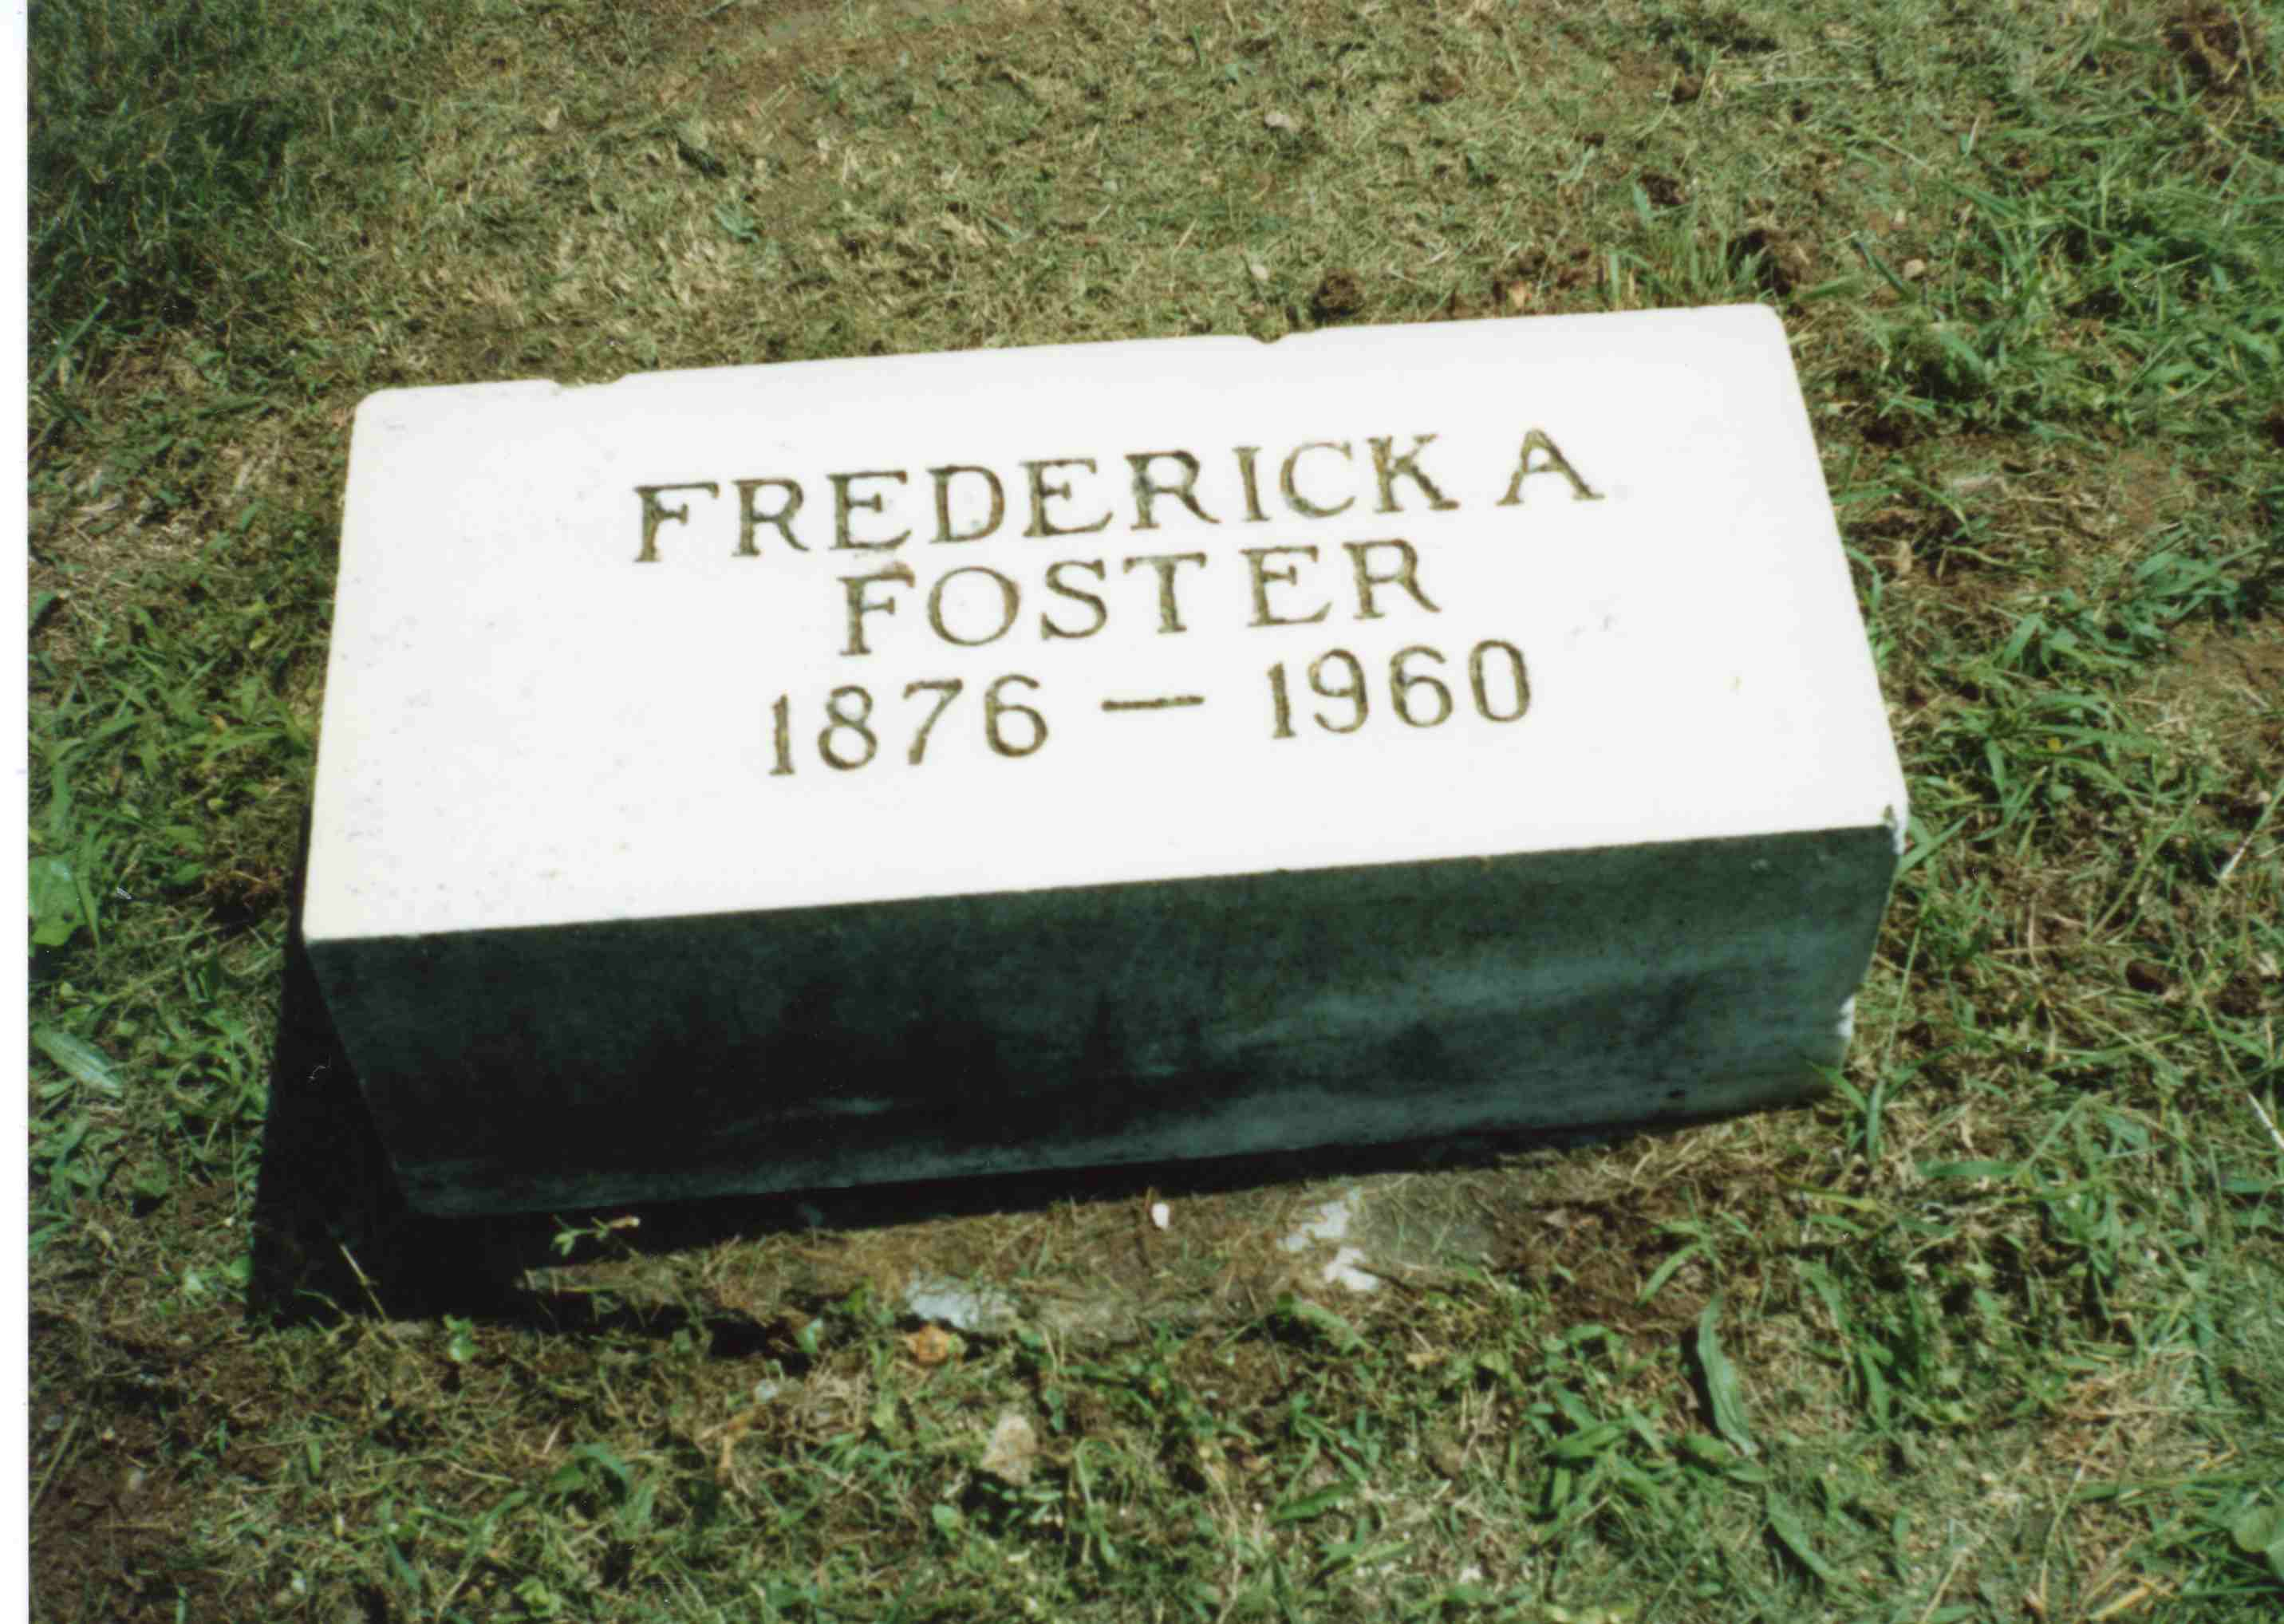 Frederick H Foster